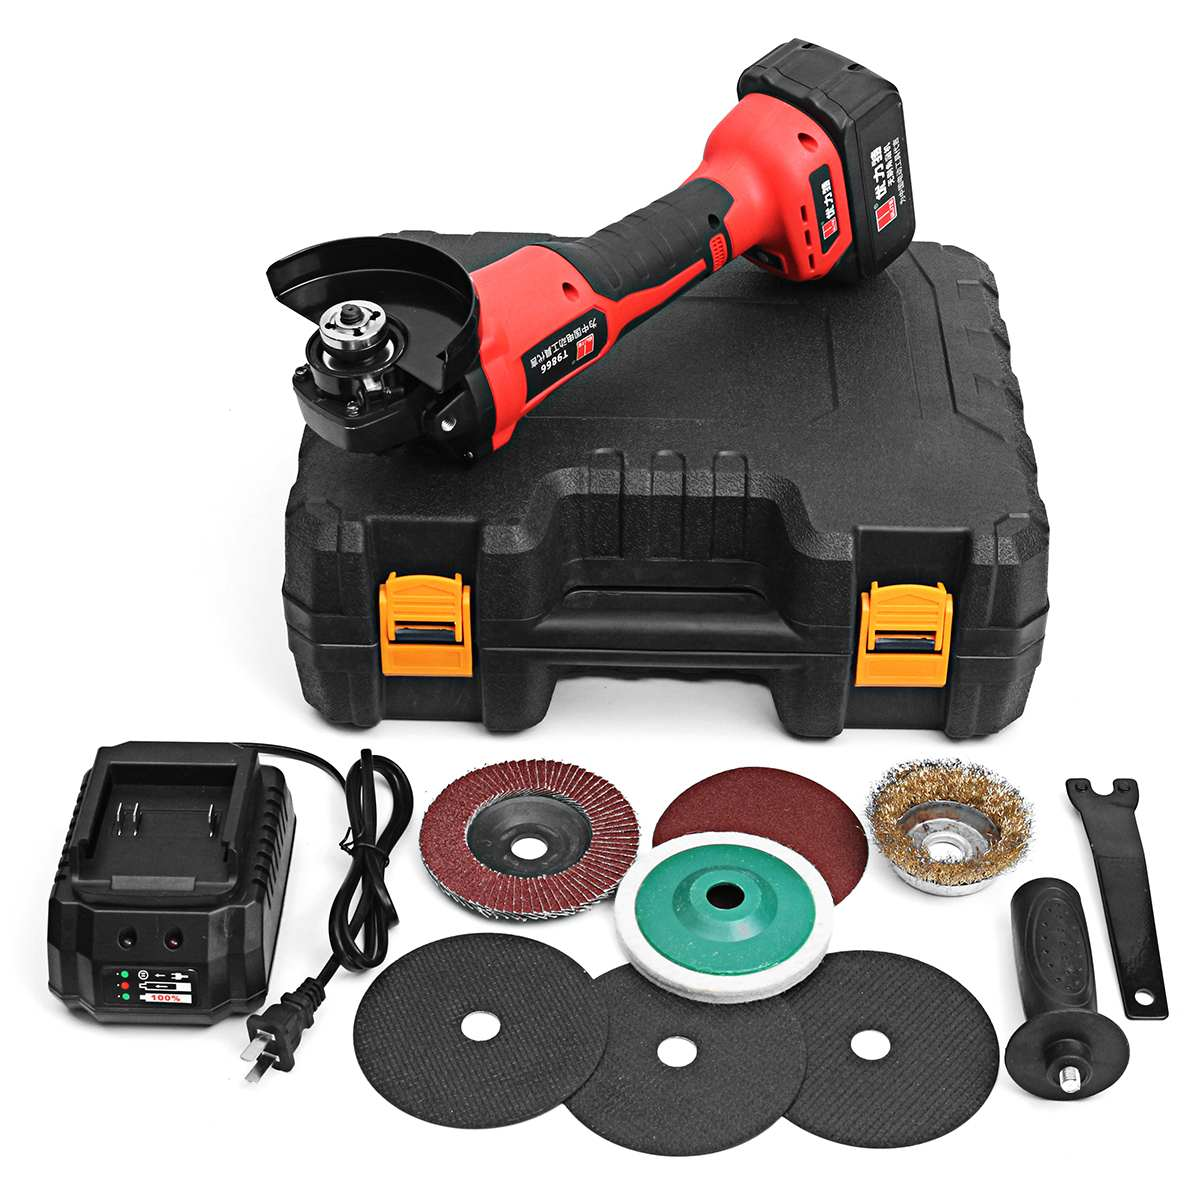 Rechargable 21V Cordless Brushless Grinder With 3.0Ah Lithium Li-ion Battery 100mm Angle Grinding Cutting Machine Kit Box